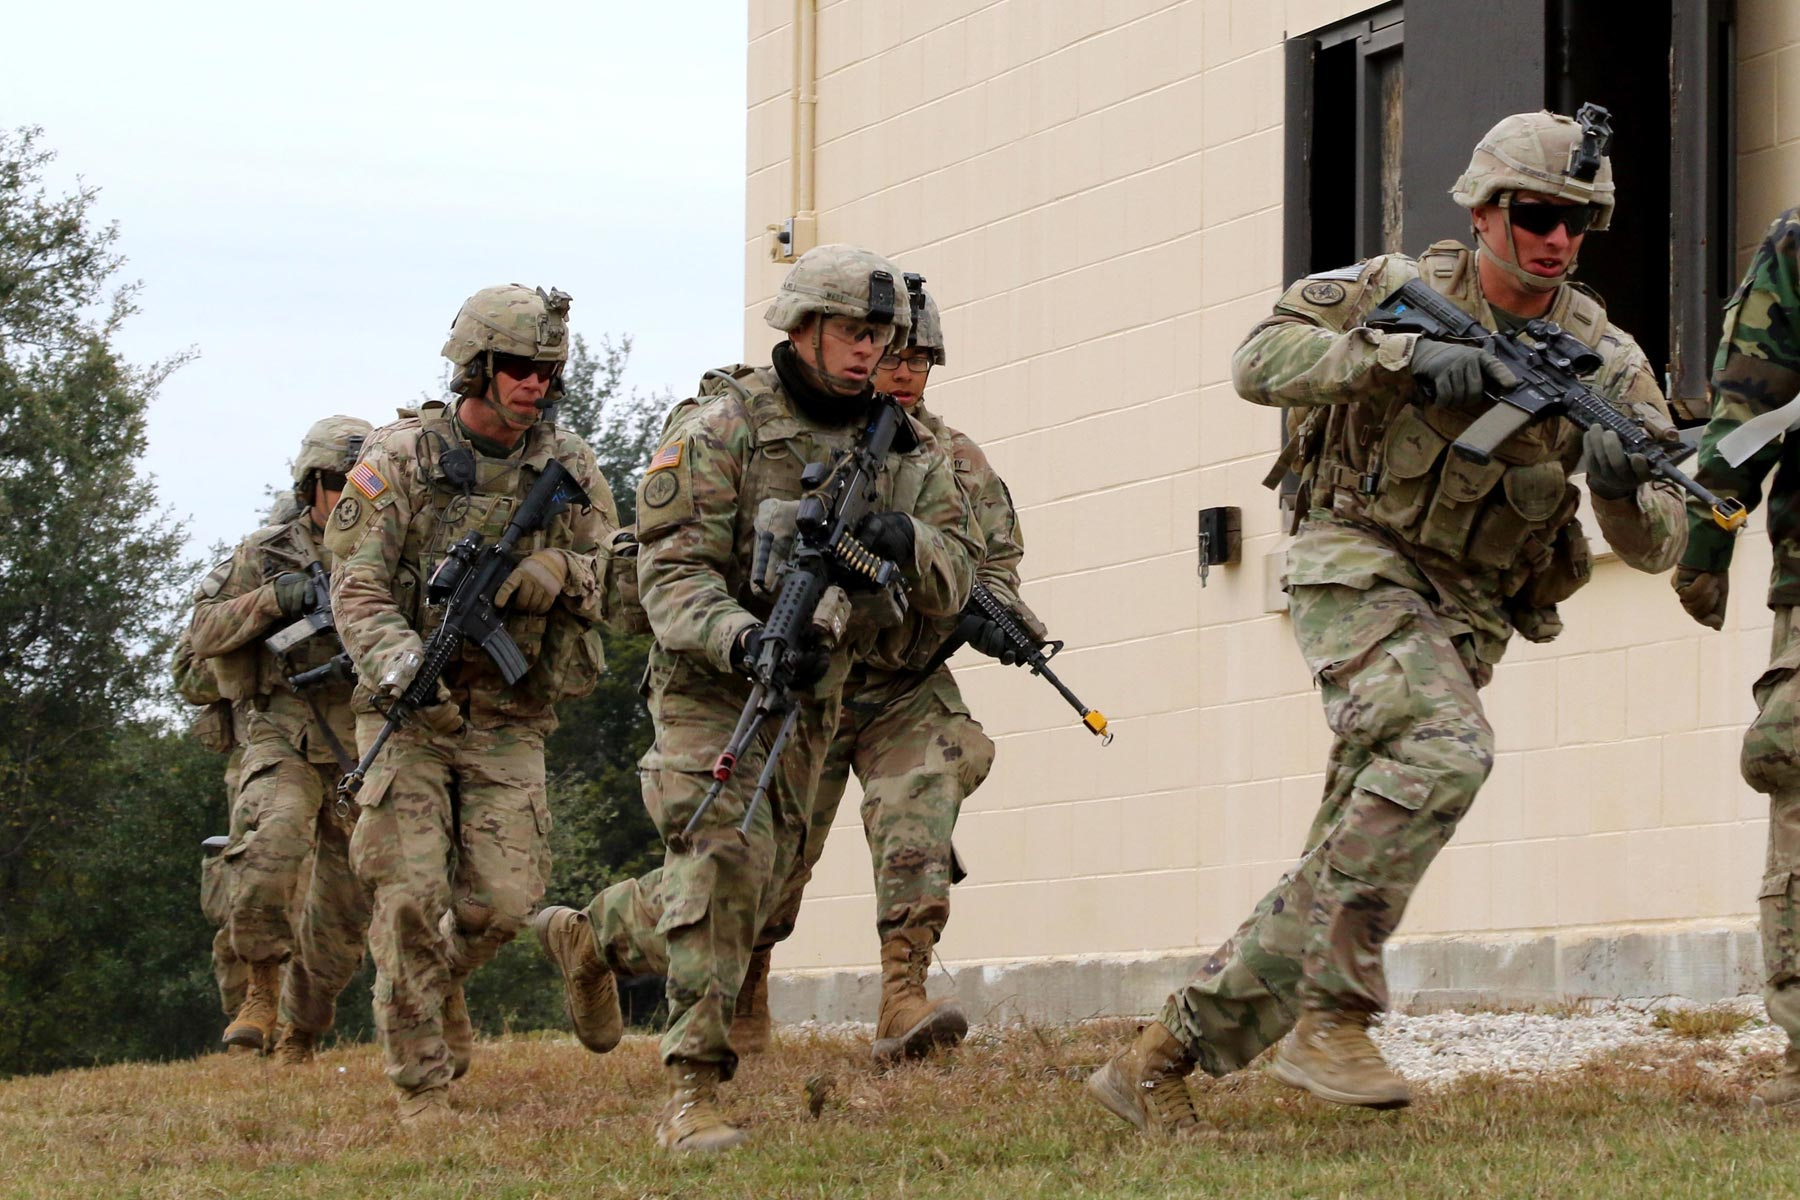 Army Announces Spring And Summer Deployments To Europe